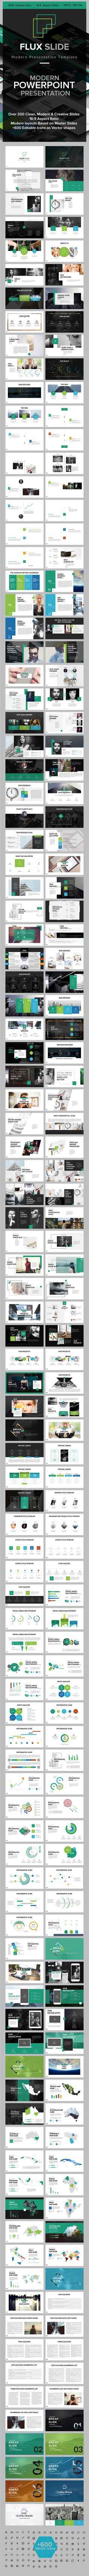 Flux Slides PowerPoint Template. Download here: http://graphicriver.net/item/flux-slides-powerpoint-template/16251740?ref=ksioks